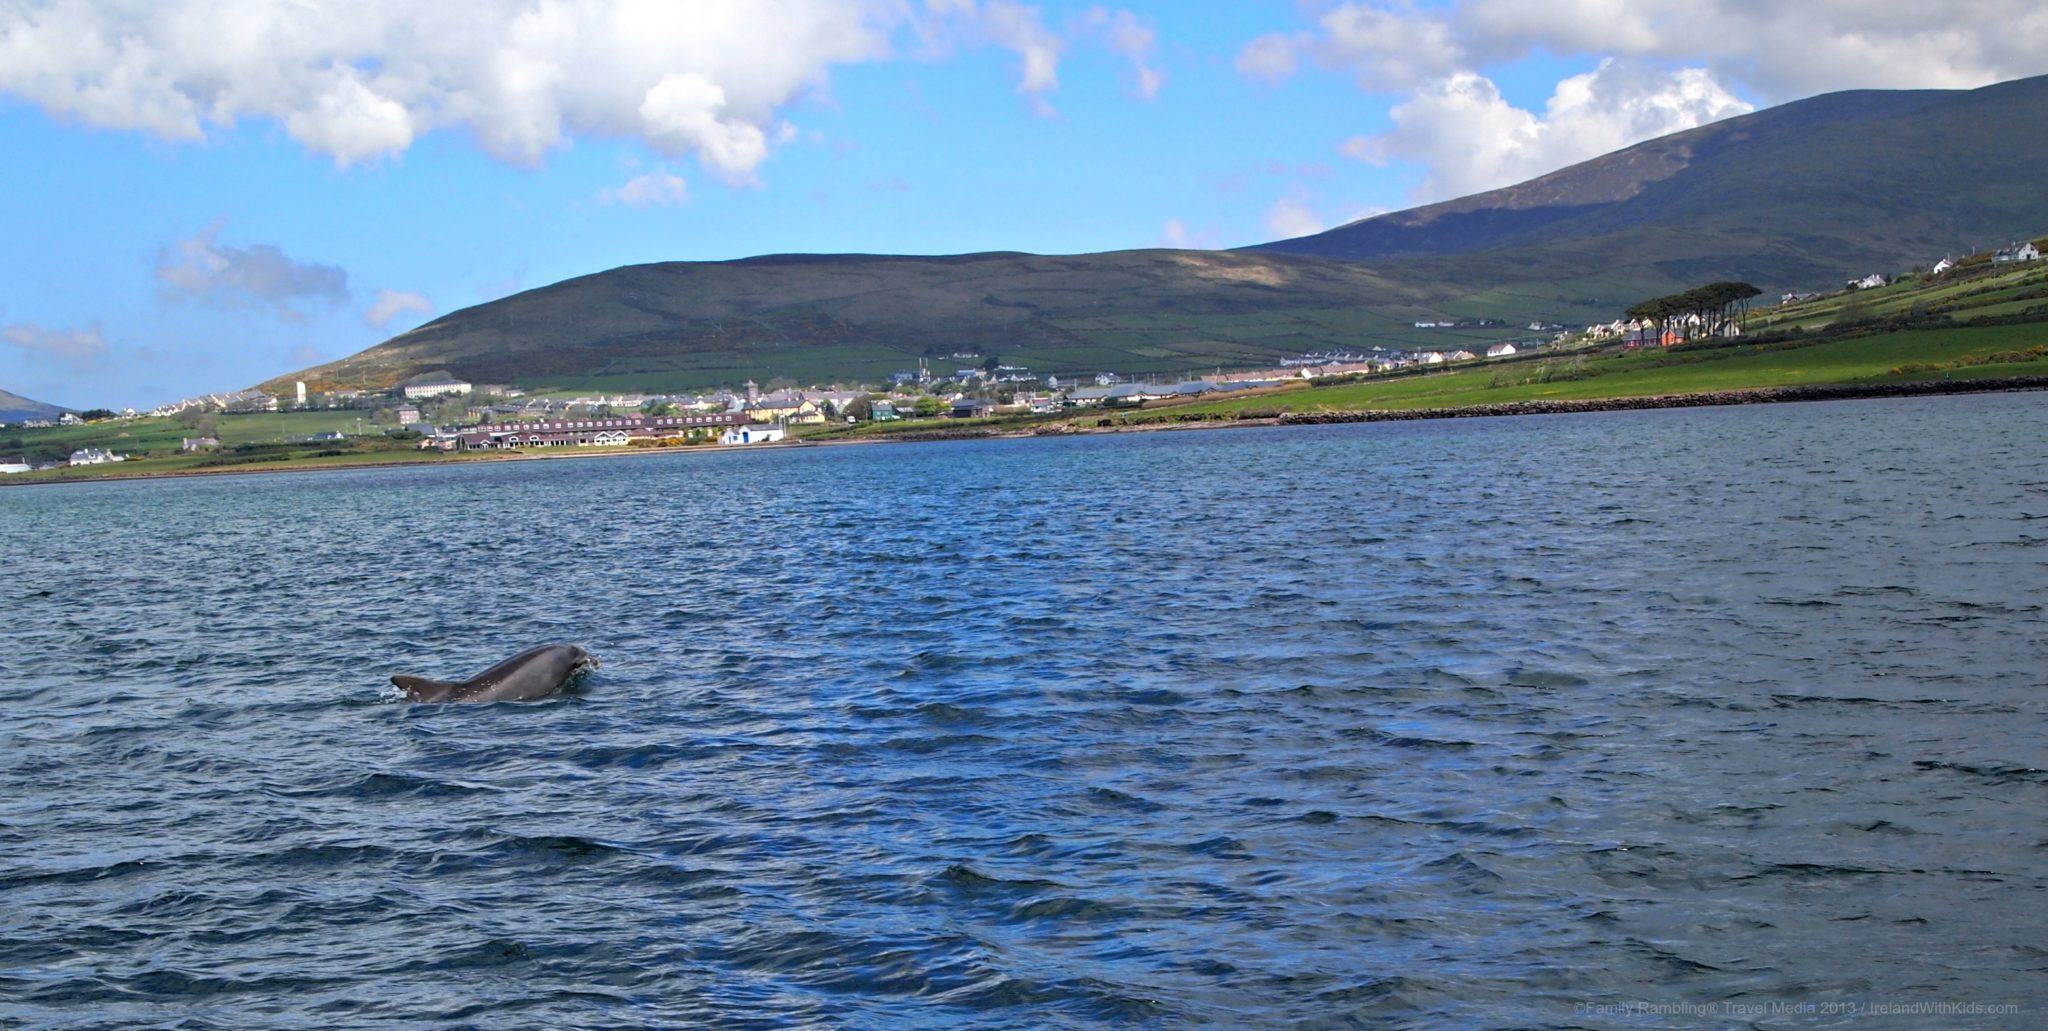 2 Fun Ways to Meet Fungi, the Famous Dingle Dolphin